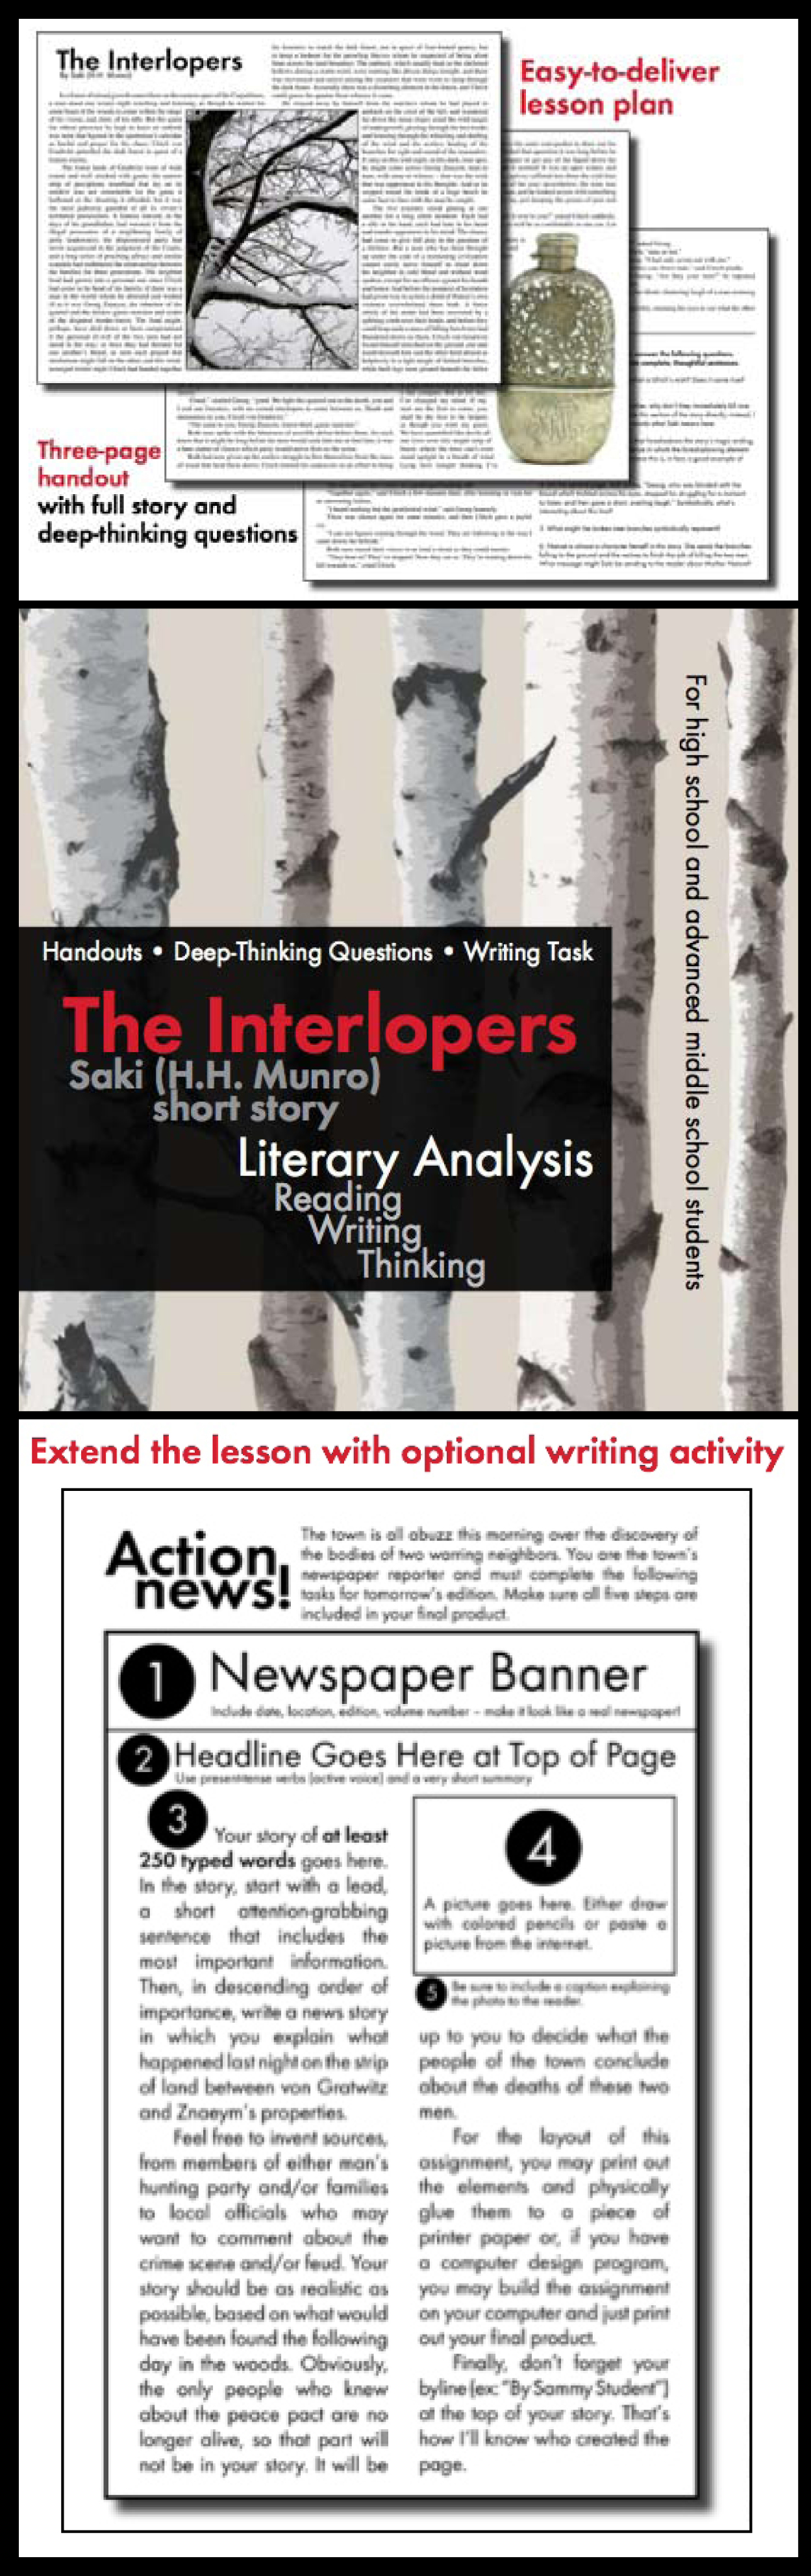 interlopers saki short story 45 min lesson lit analysis use the classic short story the interlopers by saki h h munro